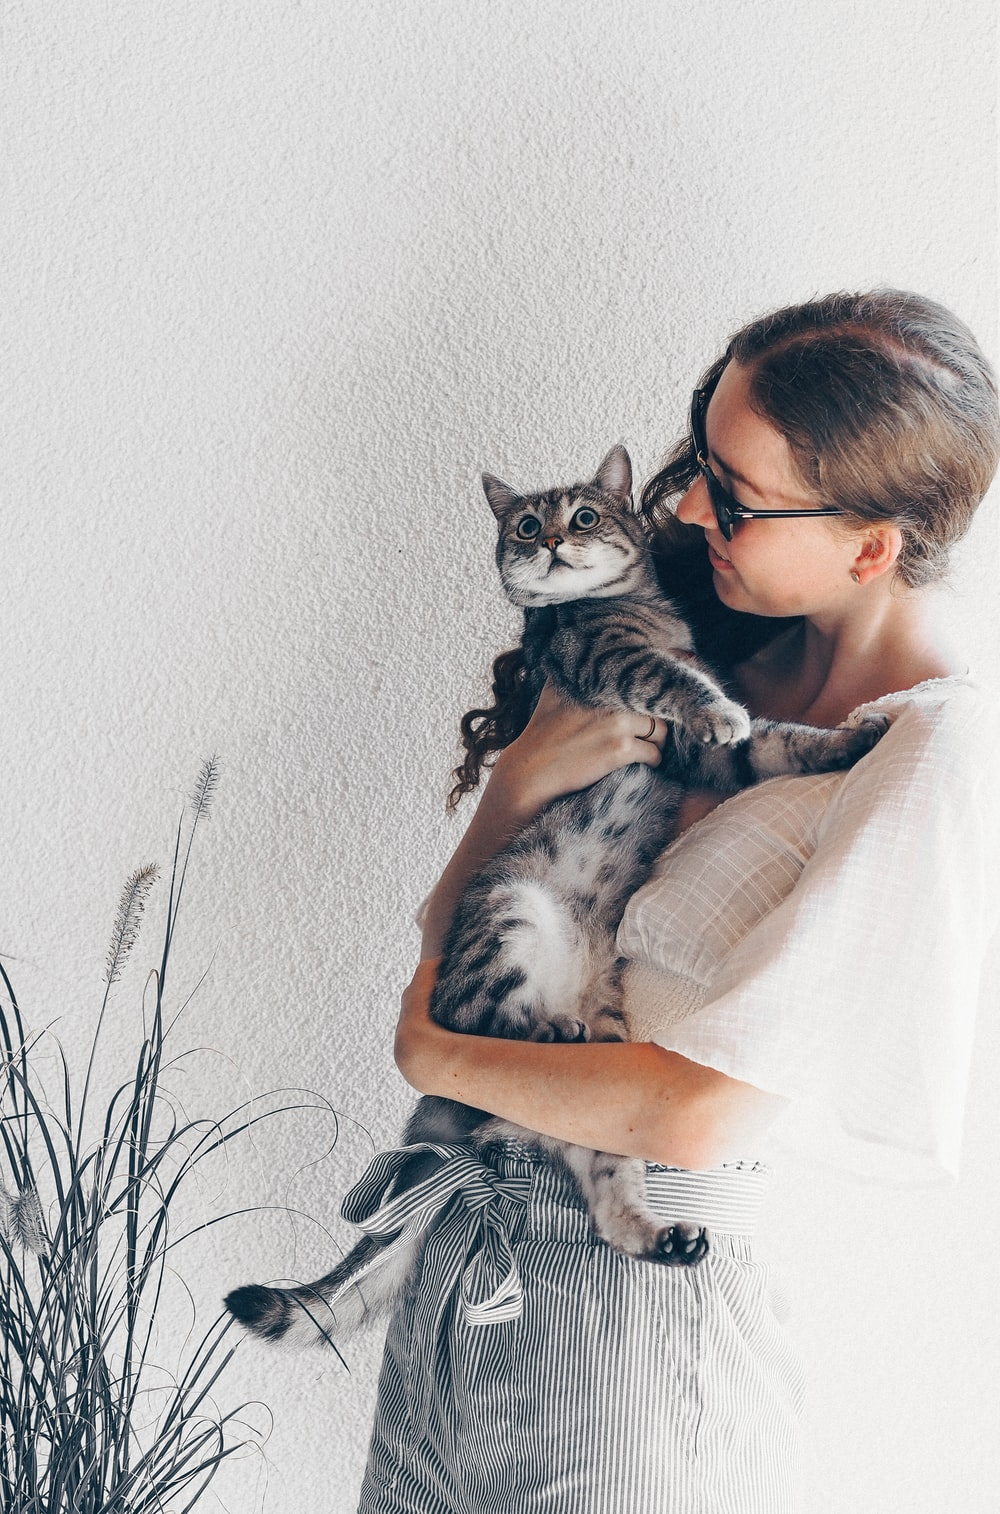 woman in black and white stripe shirt holding silver tabby cat